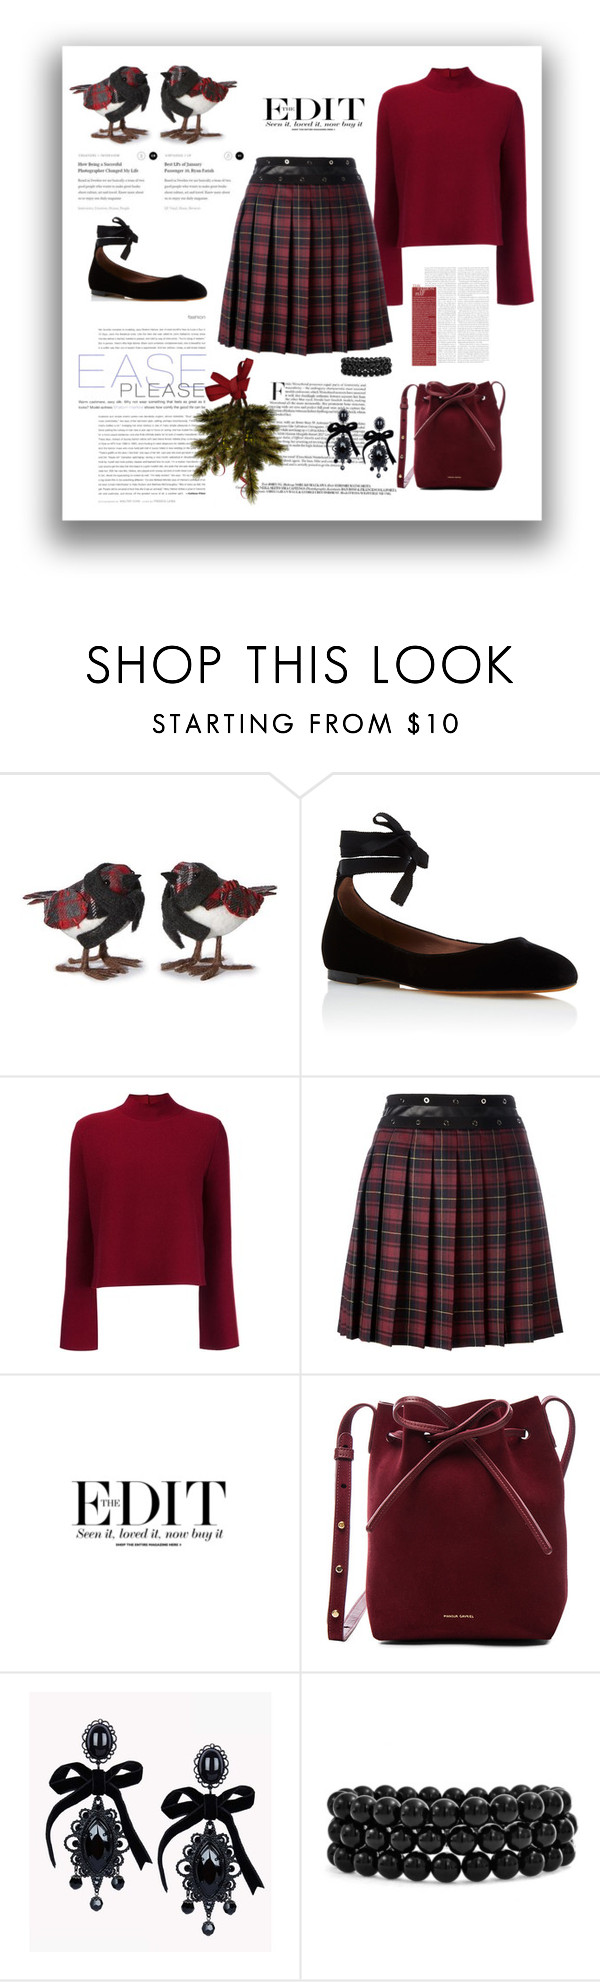 """Plaid Holiday"" by terry-tlc ❤ liked on Polyvore featuring Home Decorators Collection, Tabitha Simmons, Proenza Schouler, Giamba, Bohemia, Mansur Gavriel, Dsquared2, Bling Jewelry, Winter and plaid"